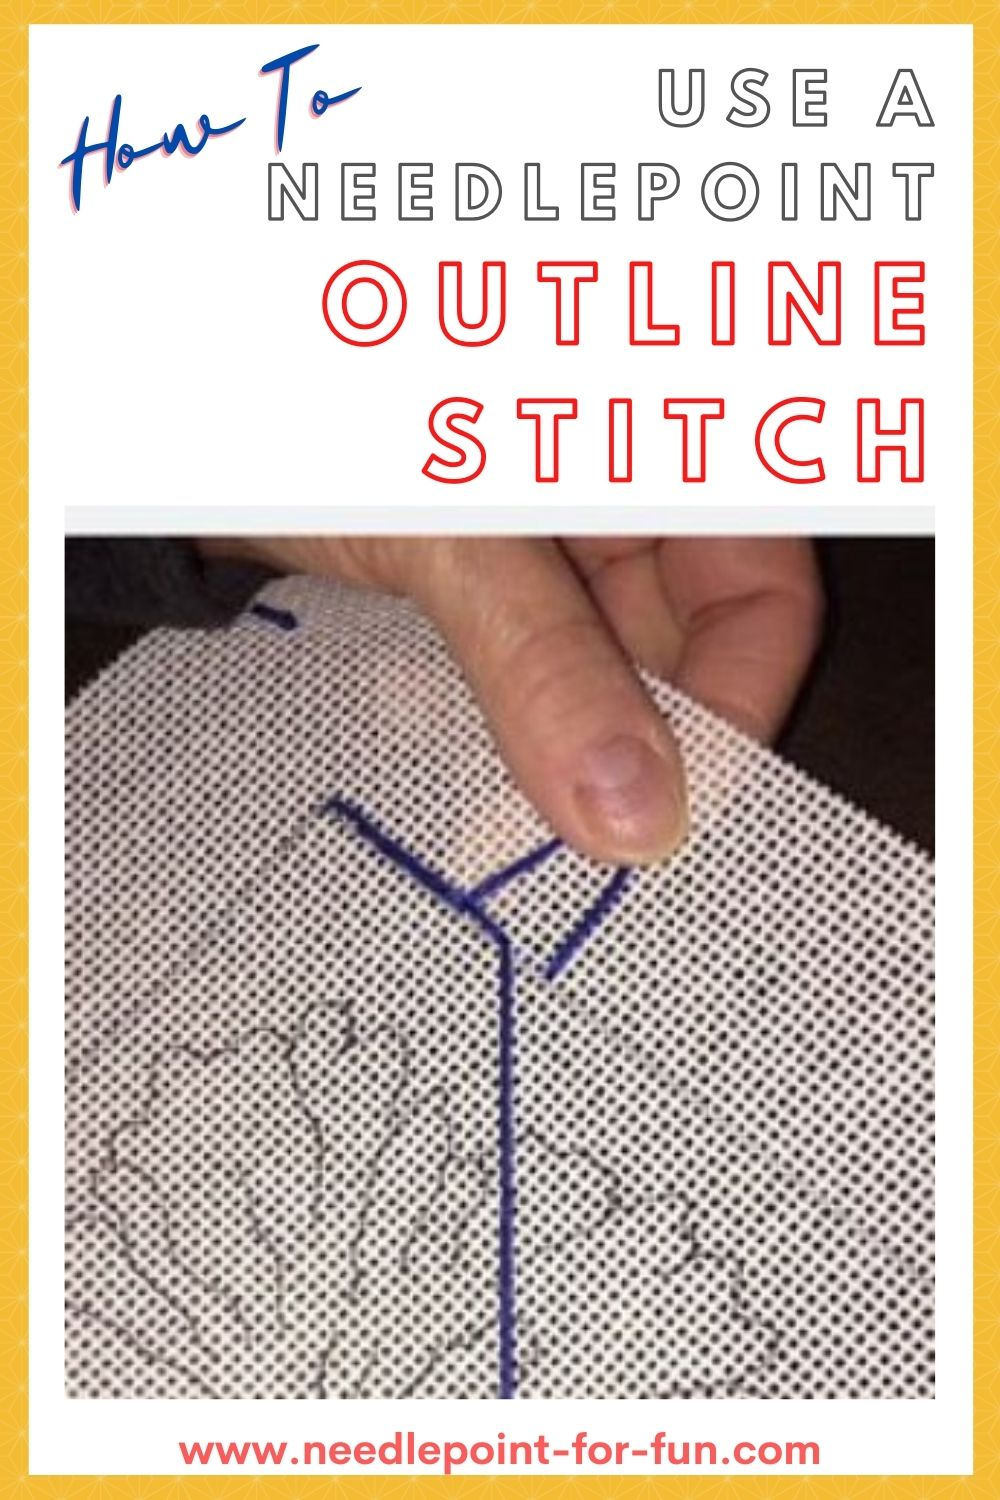 needlepoint outline stitch